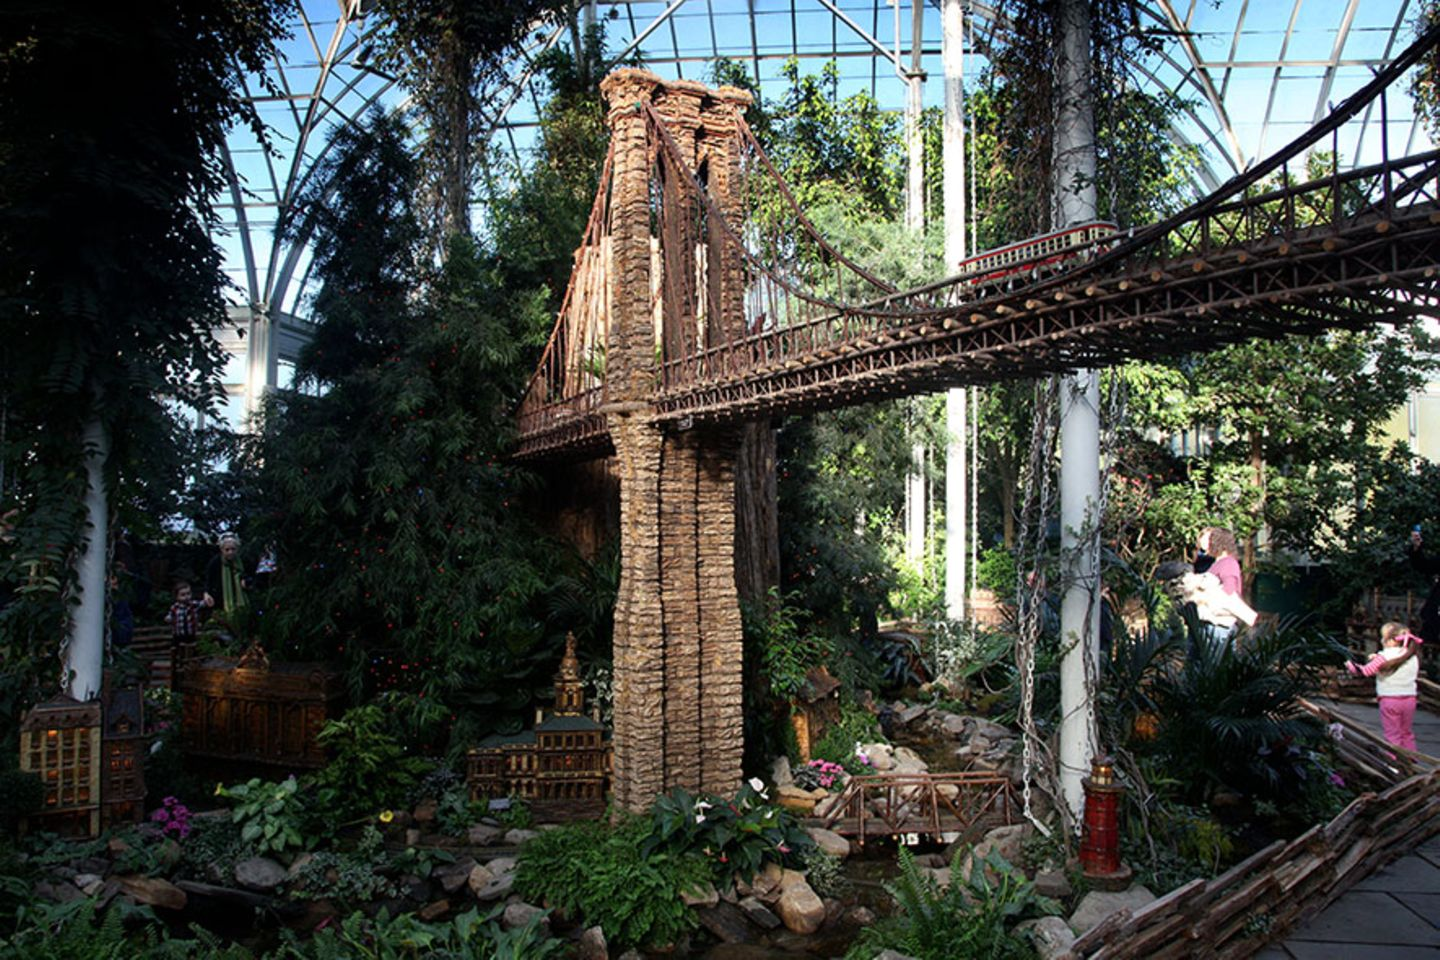 Die Holiday Train Show